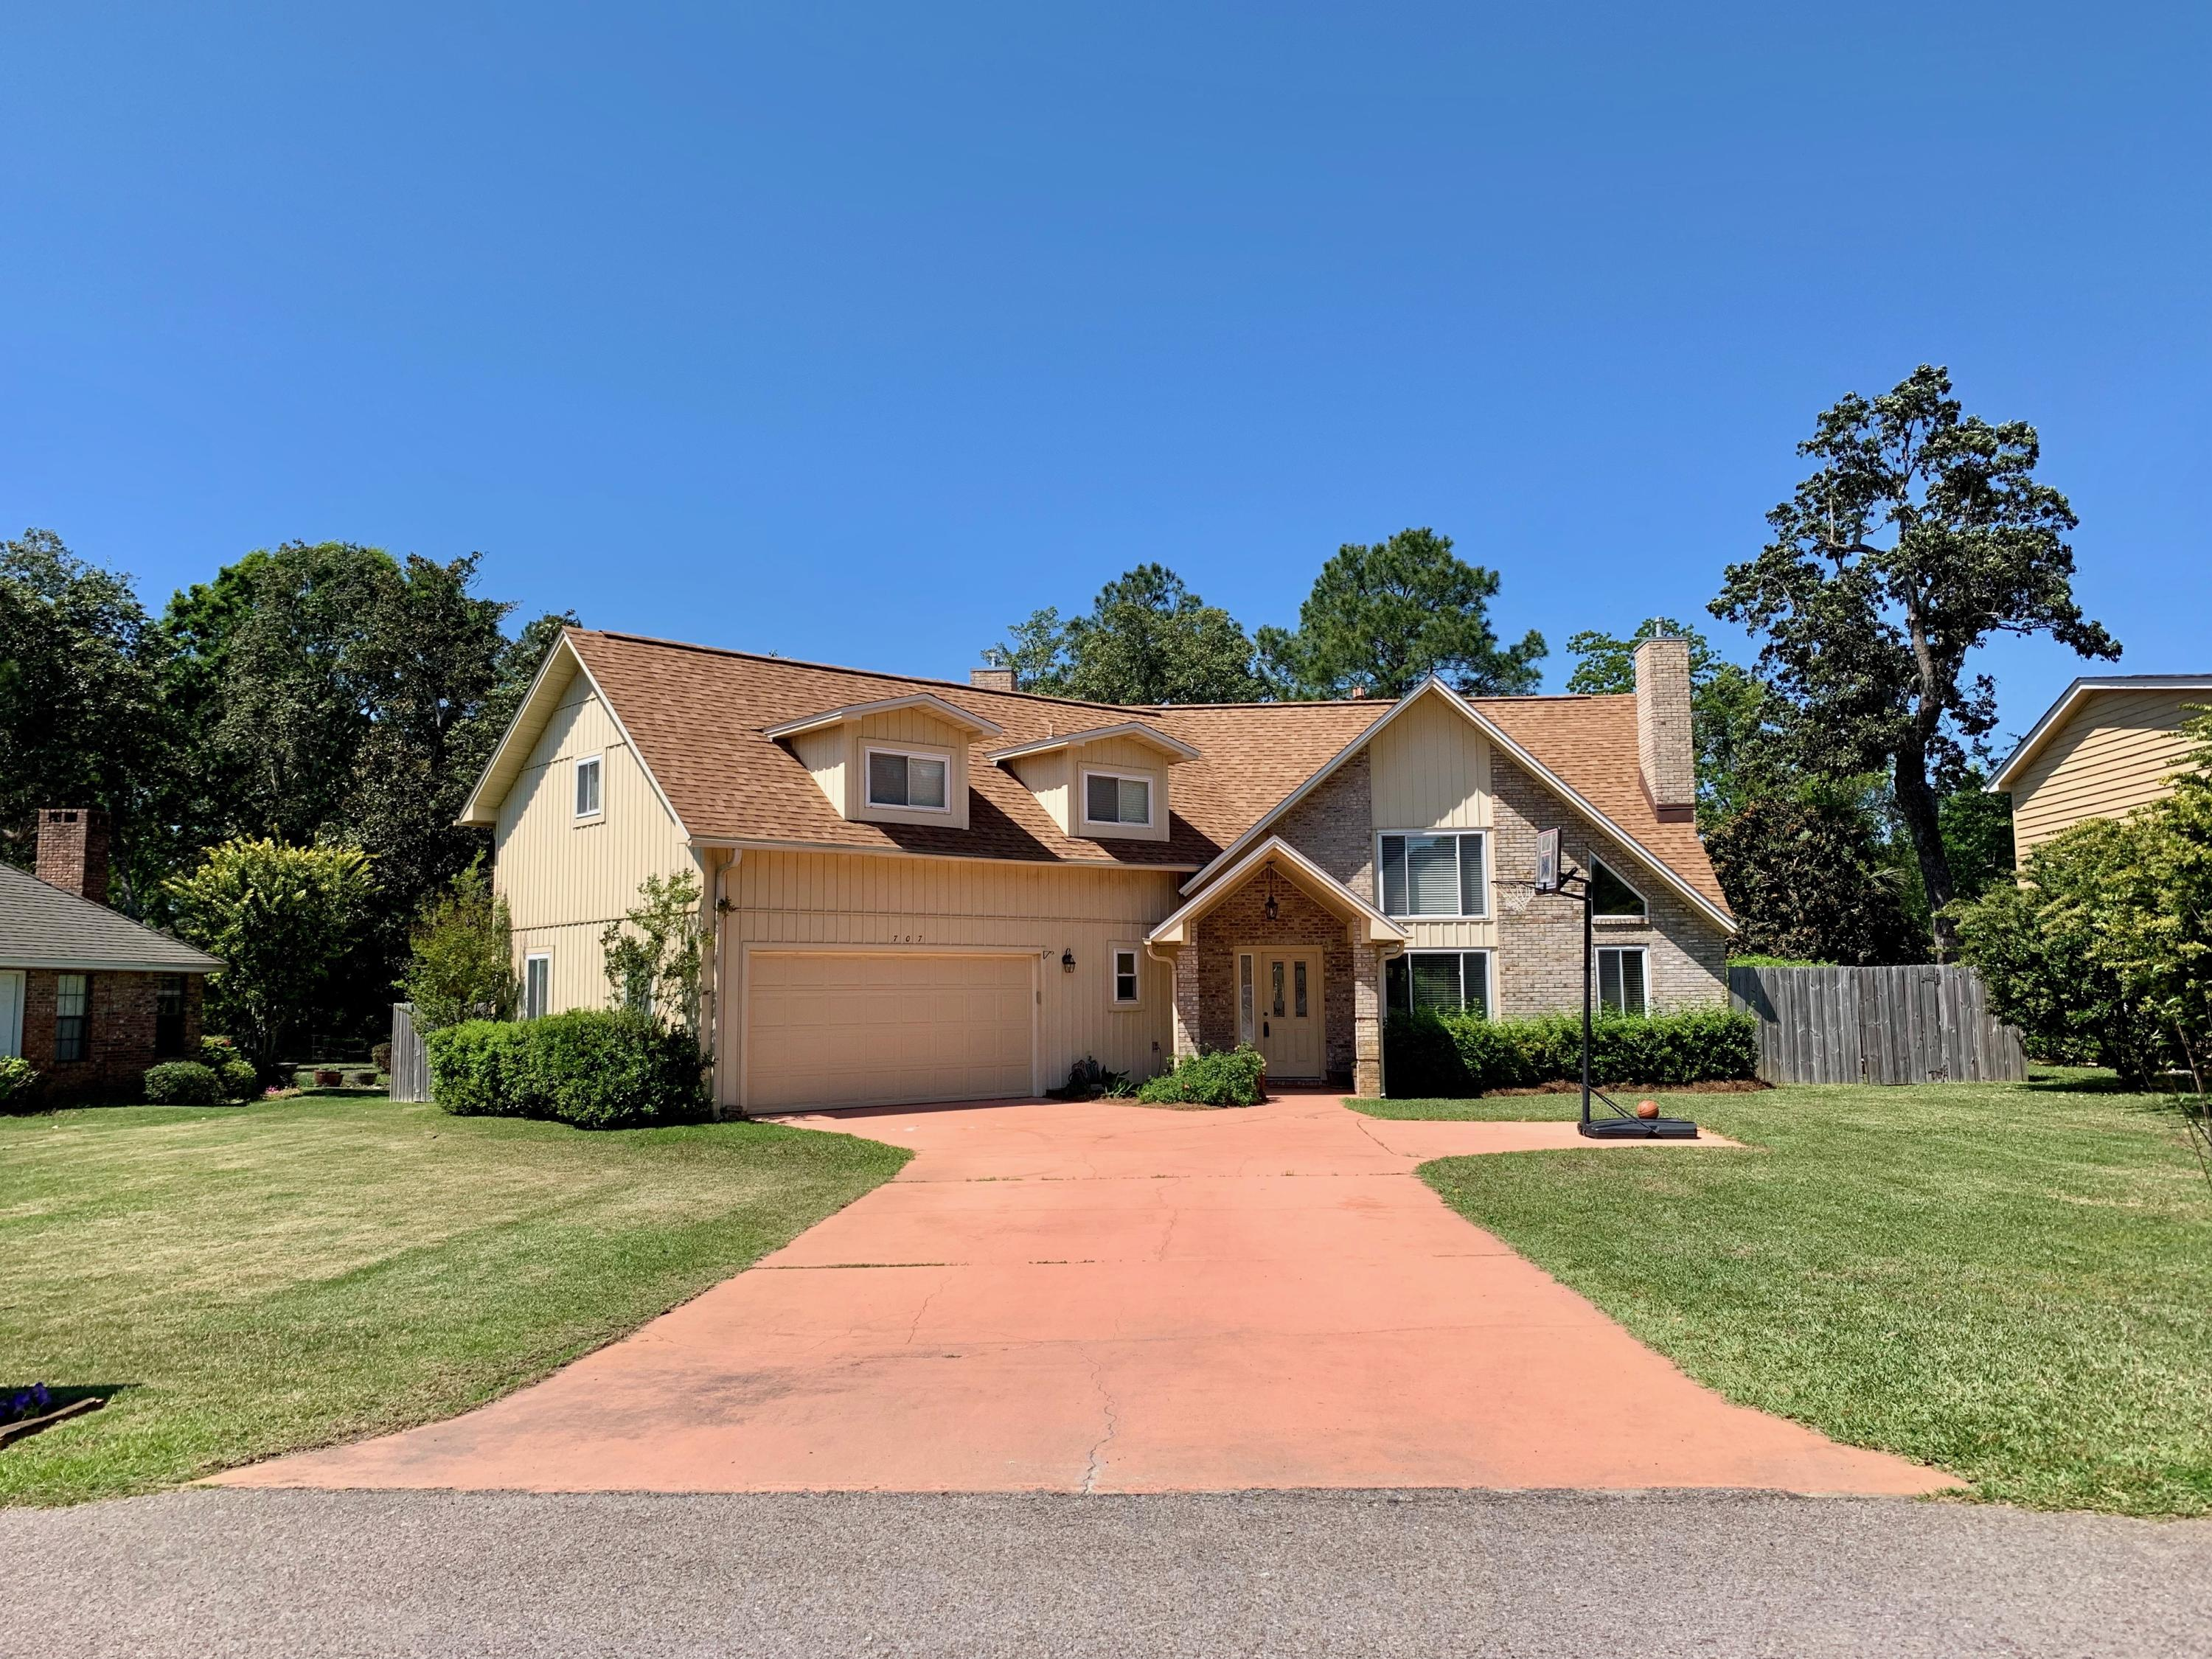 707 N Turnberry Cove, Niceville in Okaloosa County, FL 32578 Home for Sale